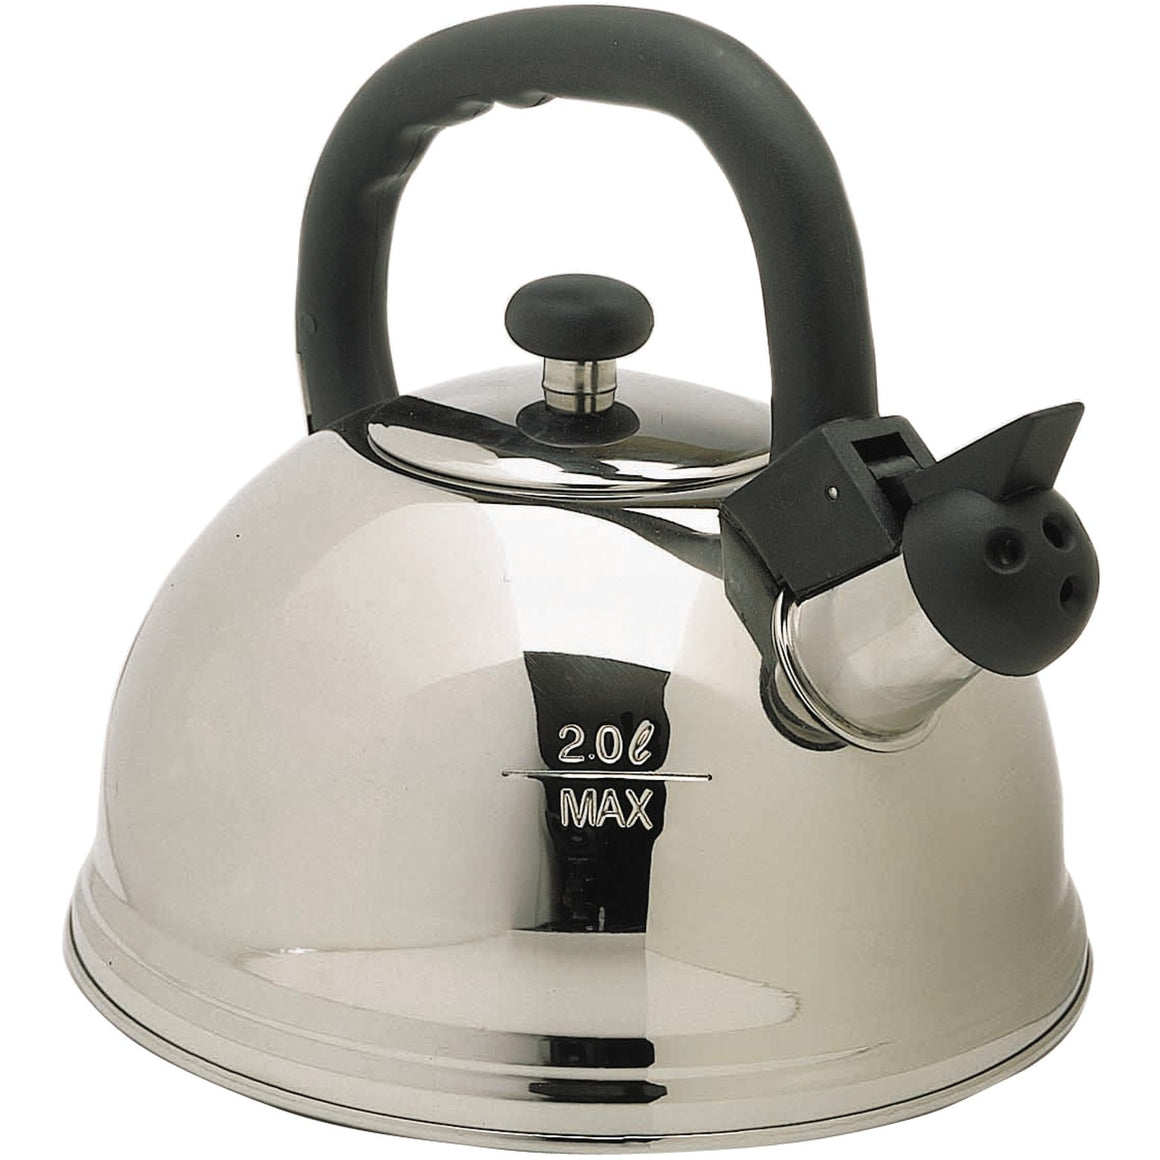 Kitchen Craft 1.6 Litre Whistle Kettle